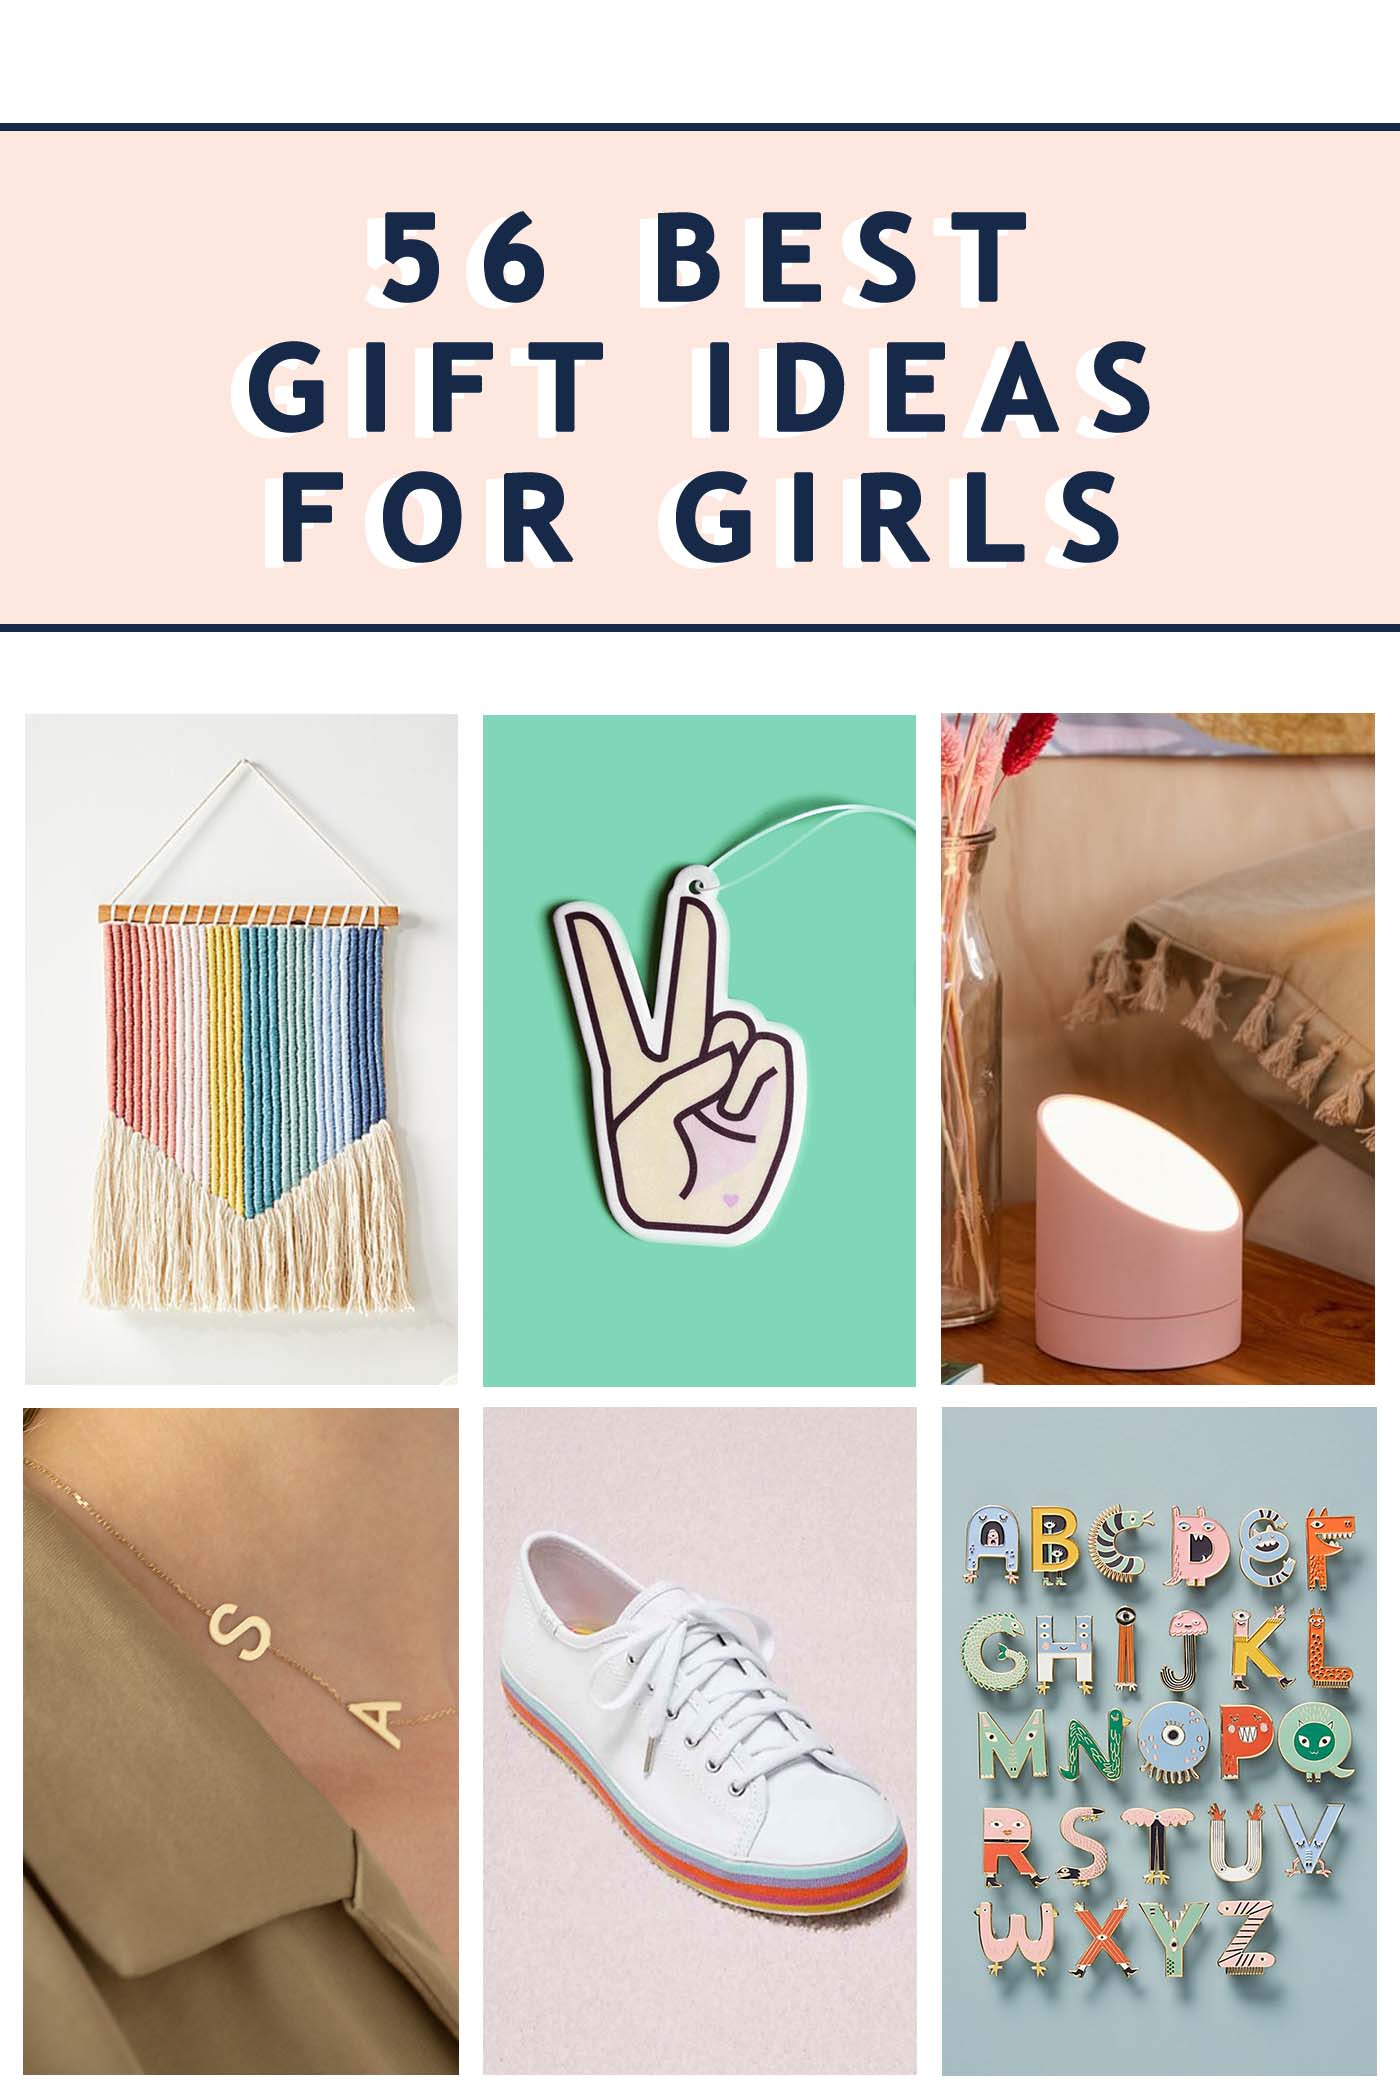 Sugar & Cloth: 56 Best Gift Ideas for Girls - Header Image